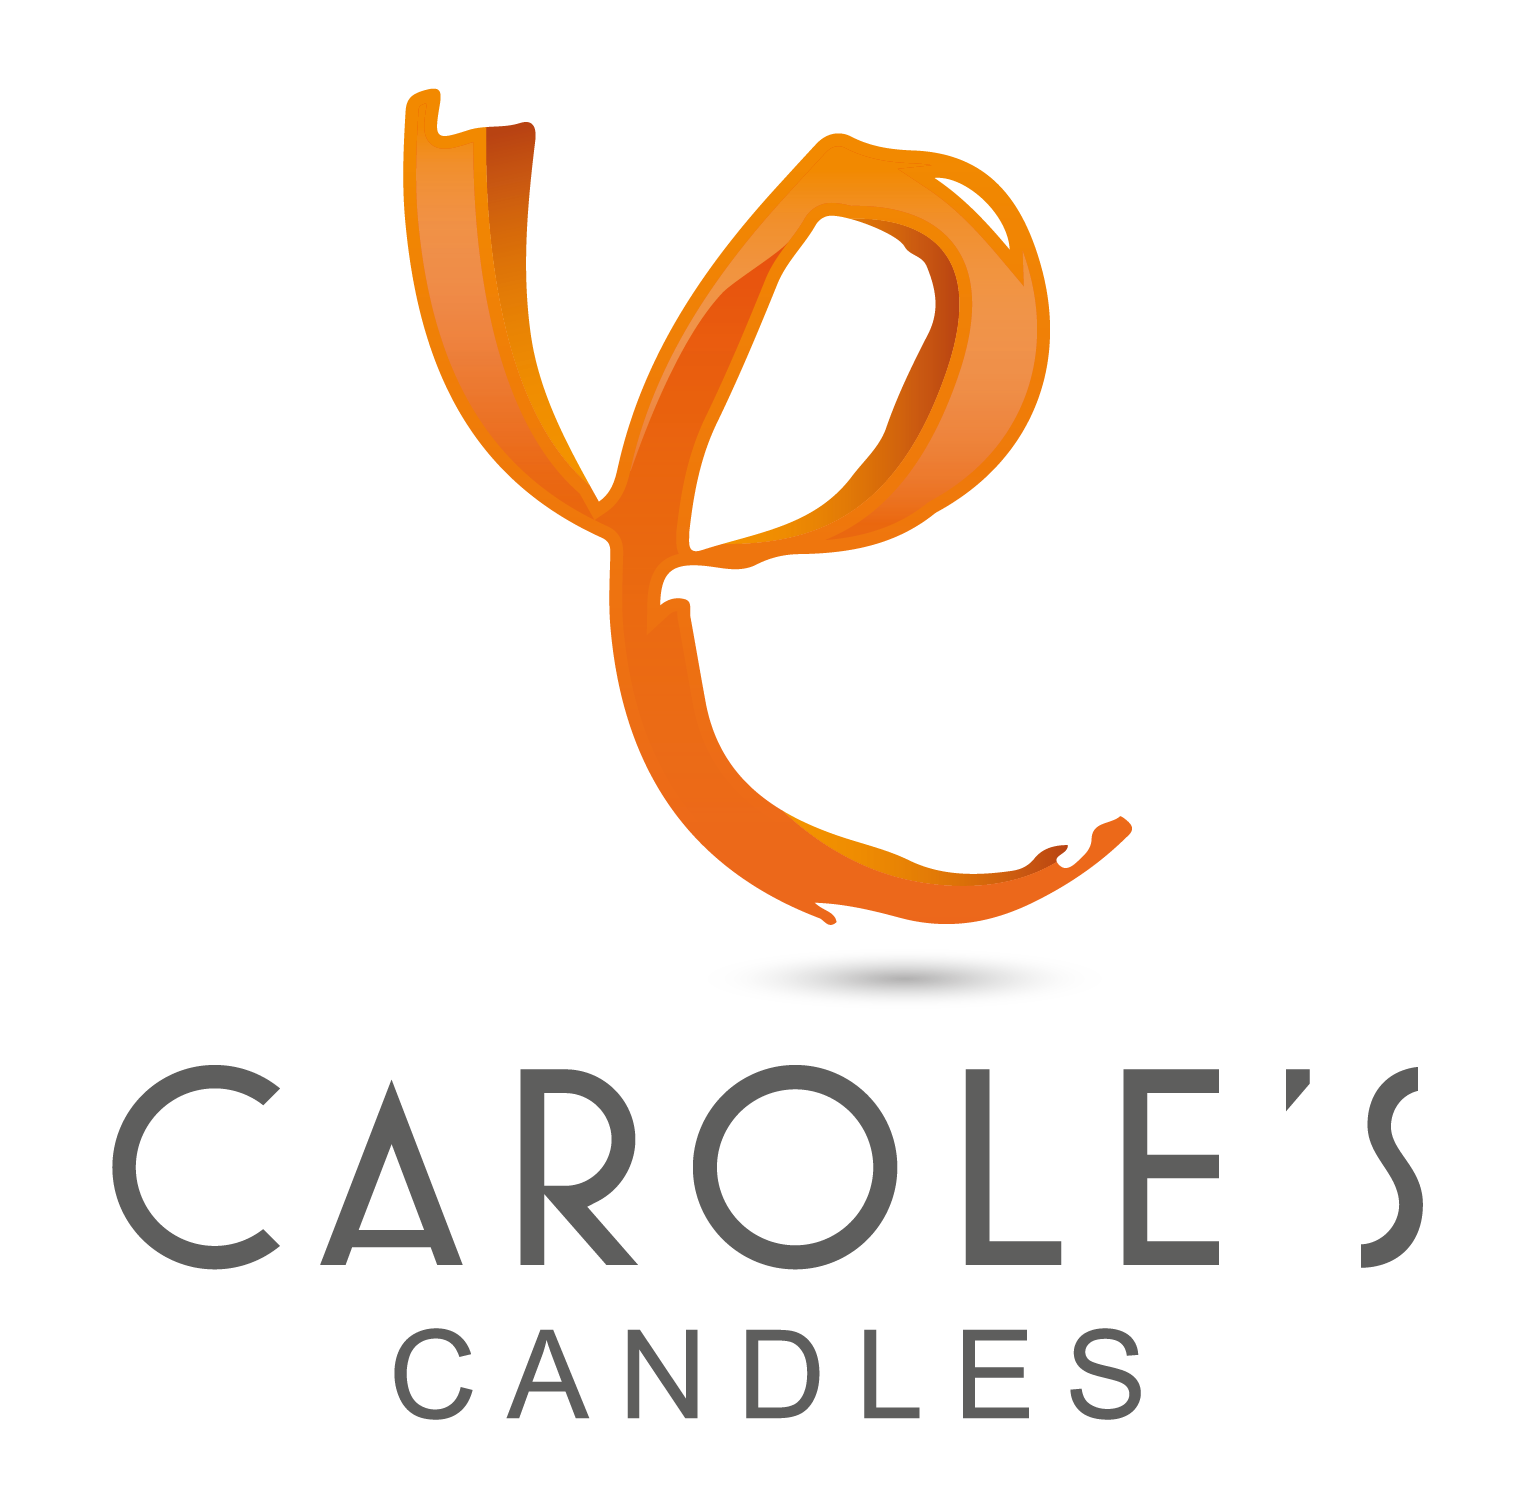 Carole's Candles